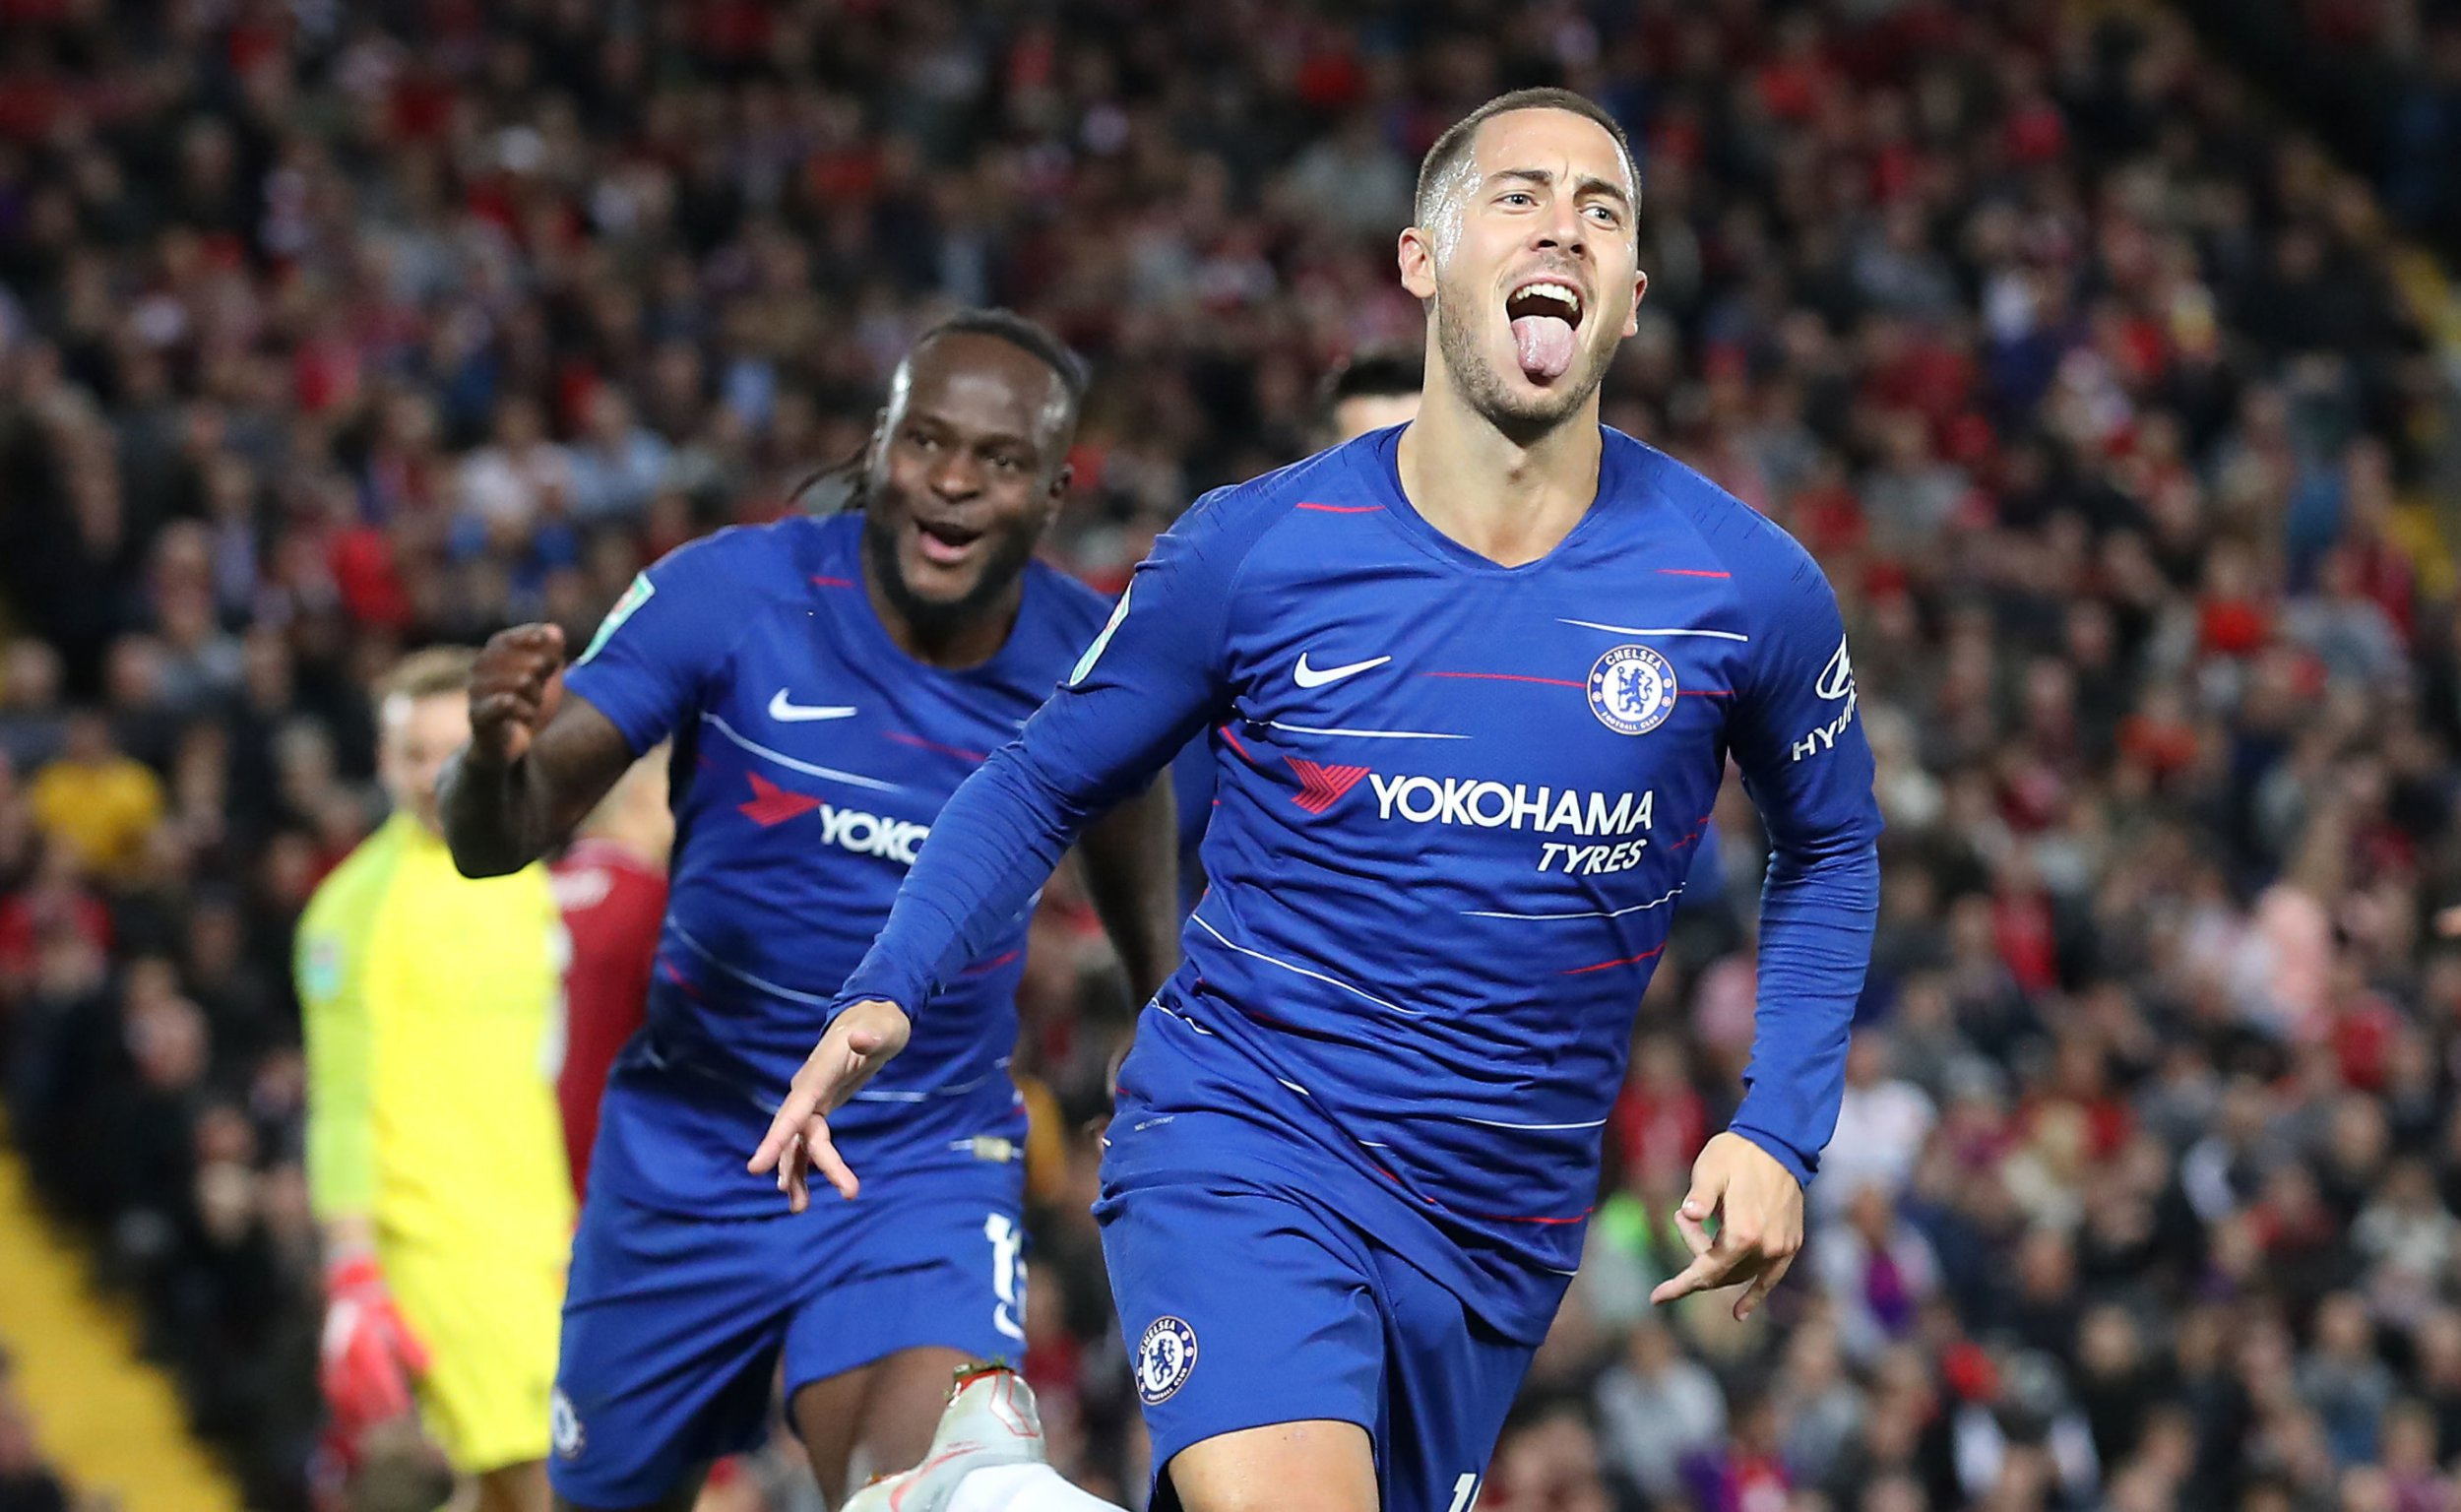 Chelsea manager Maurizio Sarri tells Eden Hazard he must train harder to realise his full potential